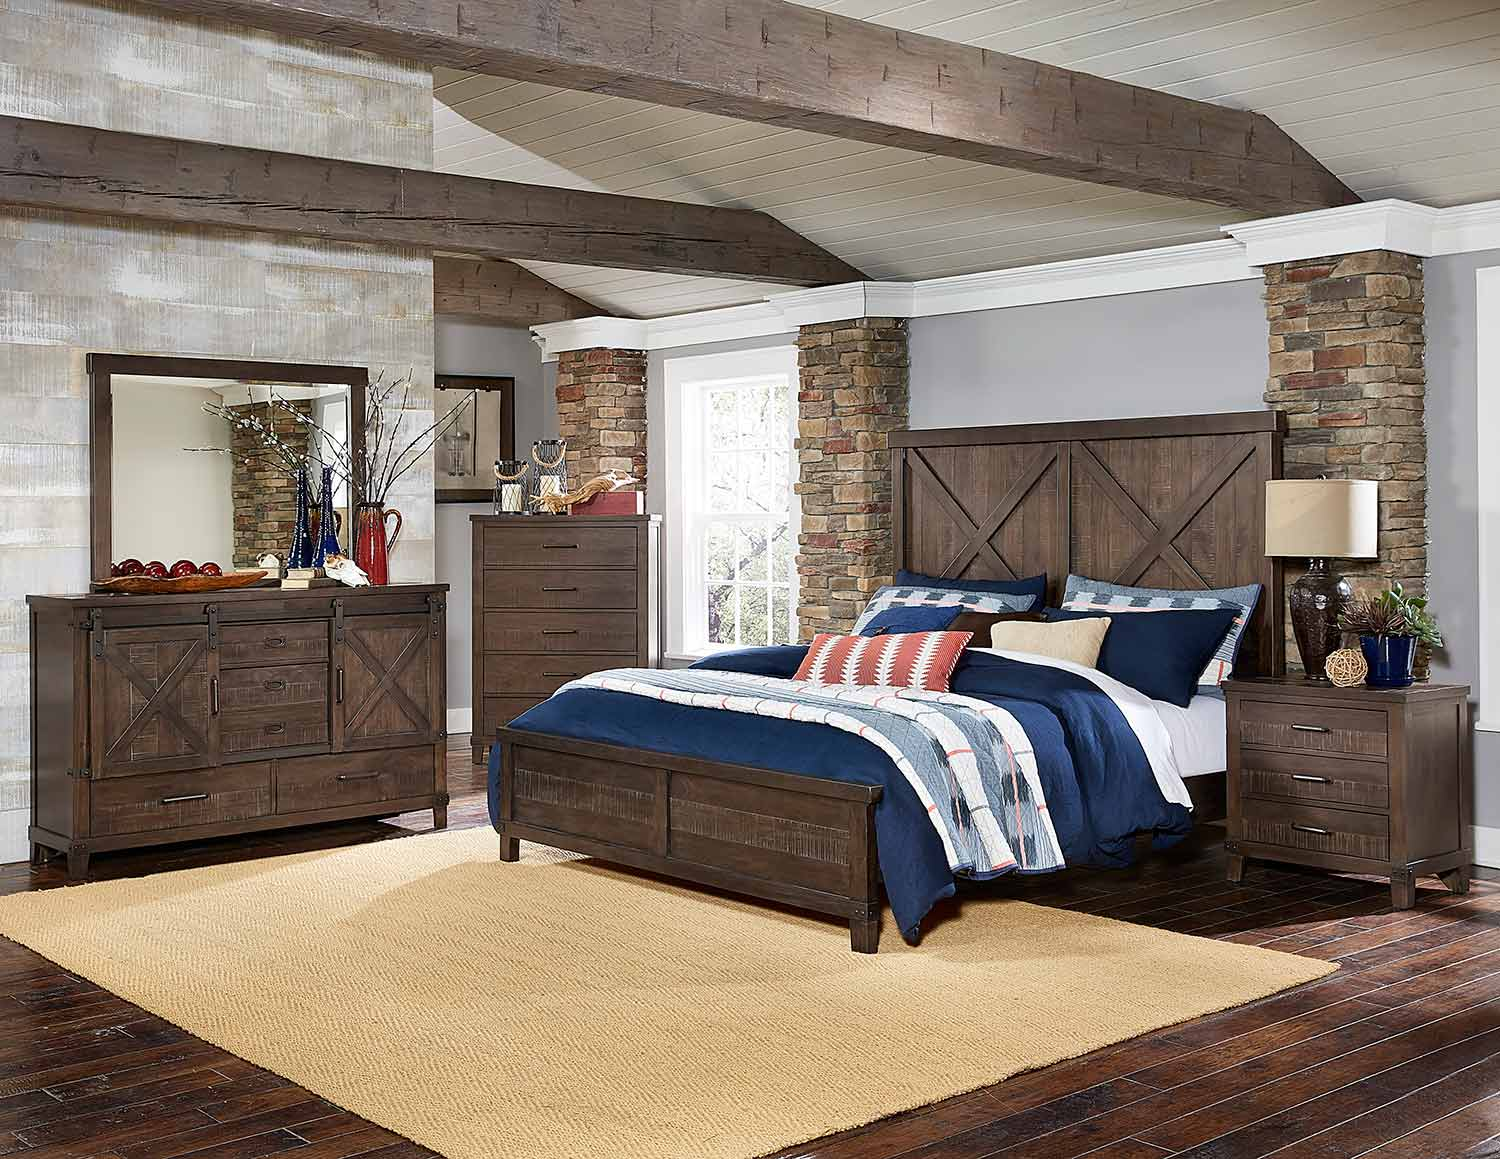 Homelegance Hill Creek Panel Bedroom Set - Rustic Brown